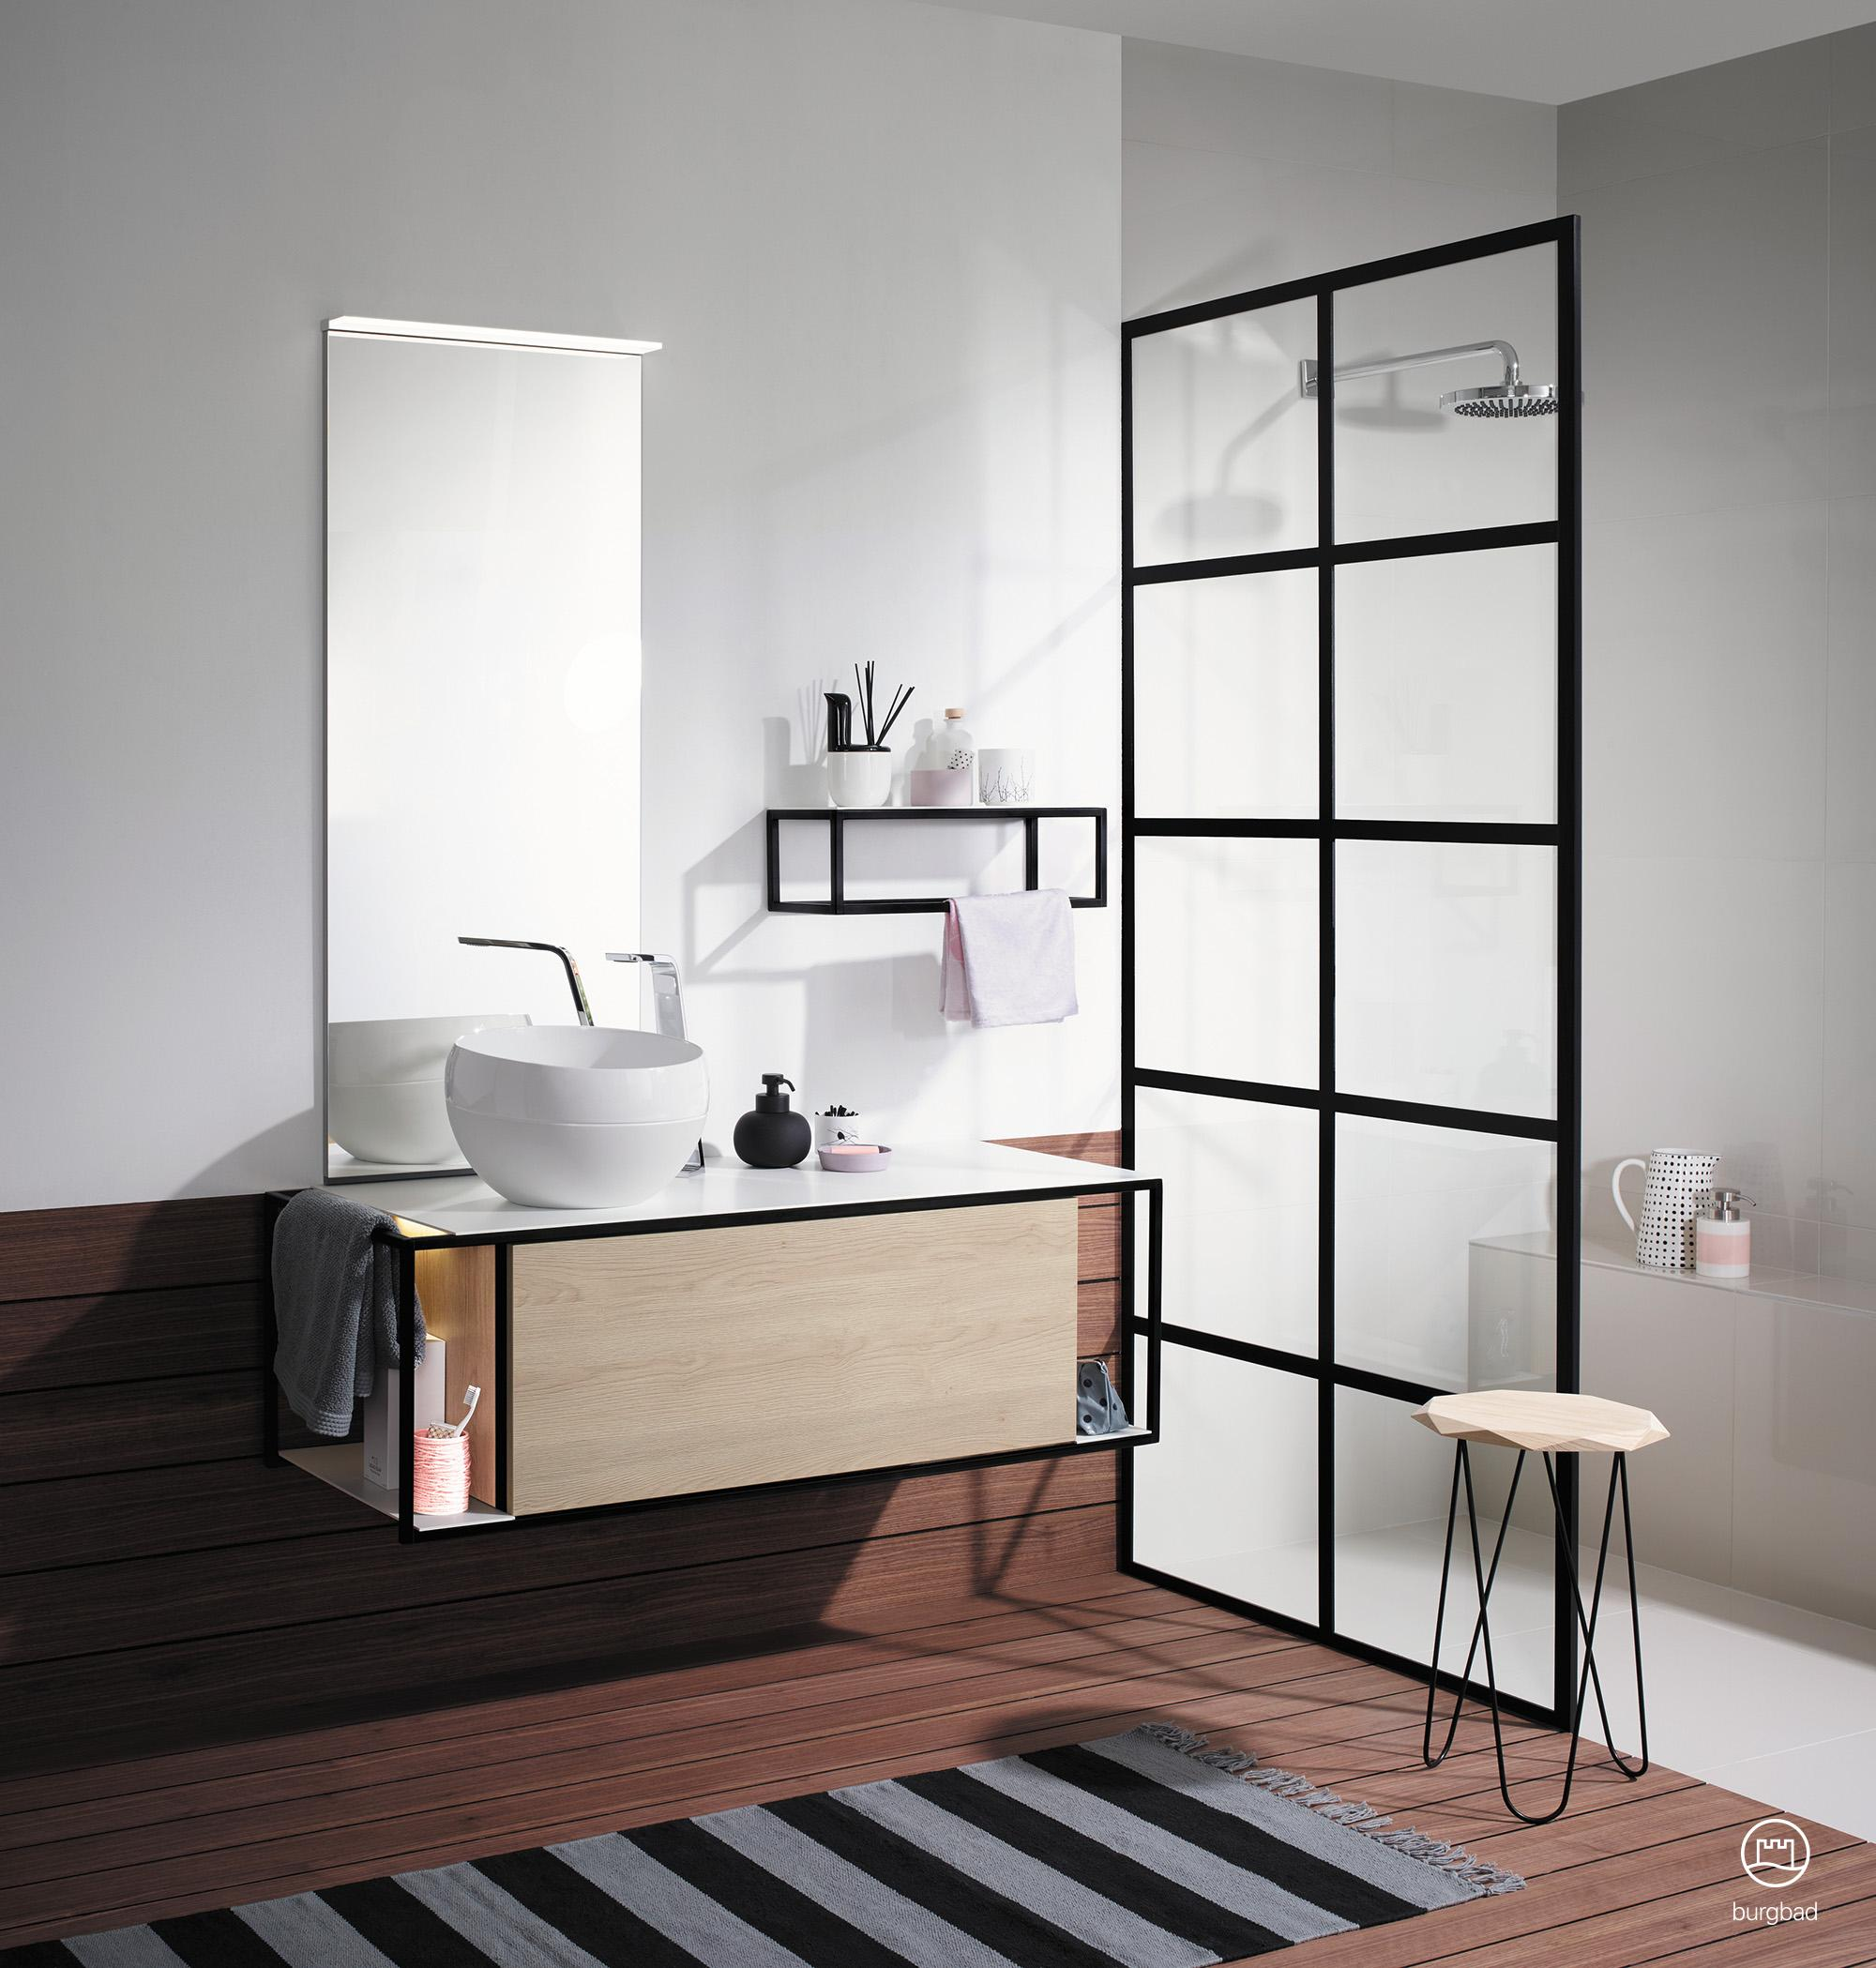 badmbel selber bauen free endmontage with badmbel selber bauen beautiful mbel selber bauen. Black Bedroom Furniture Sets. Home Design Ideas